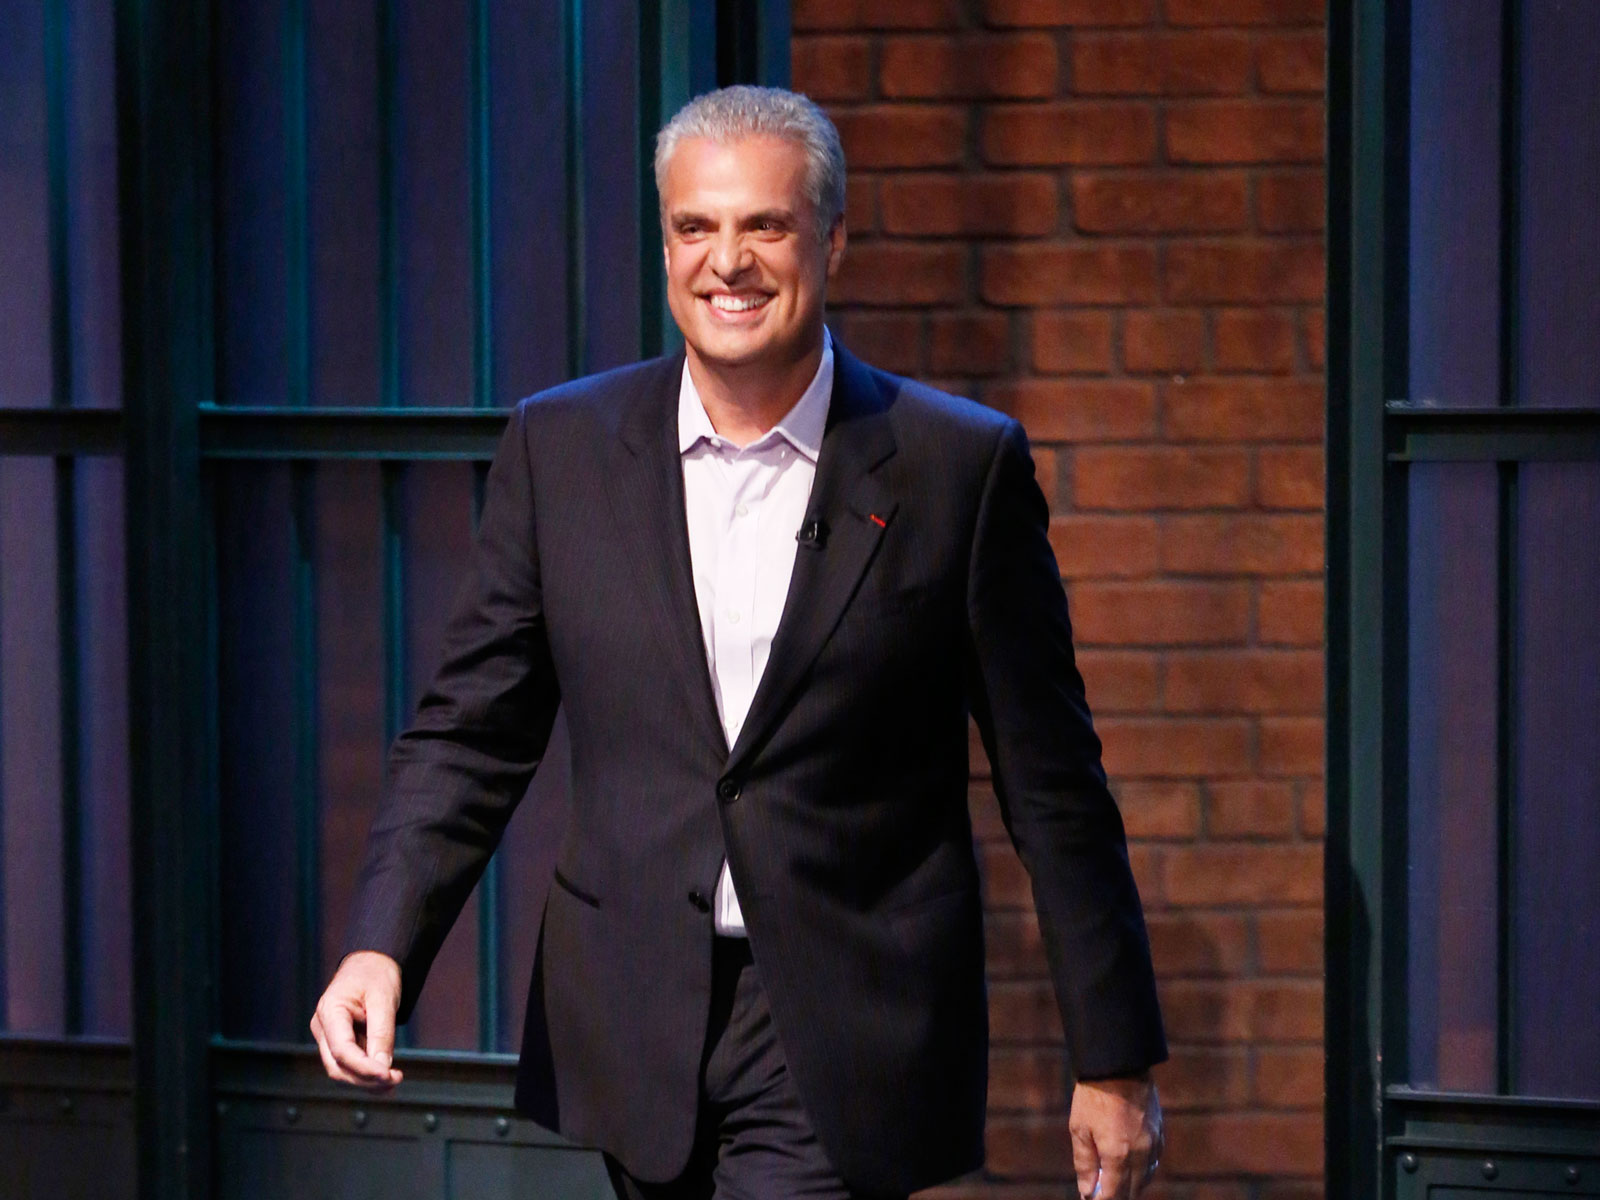 eric-ripert-wine-game-show-FT-BLOG0518.jpg